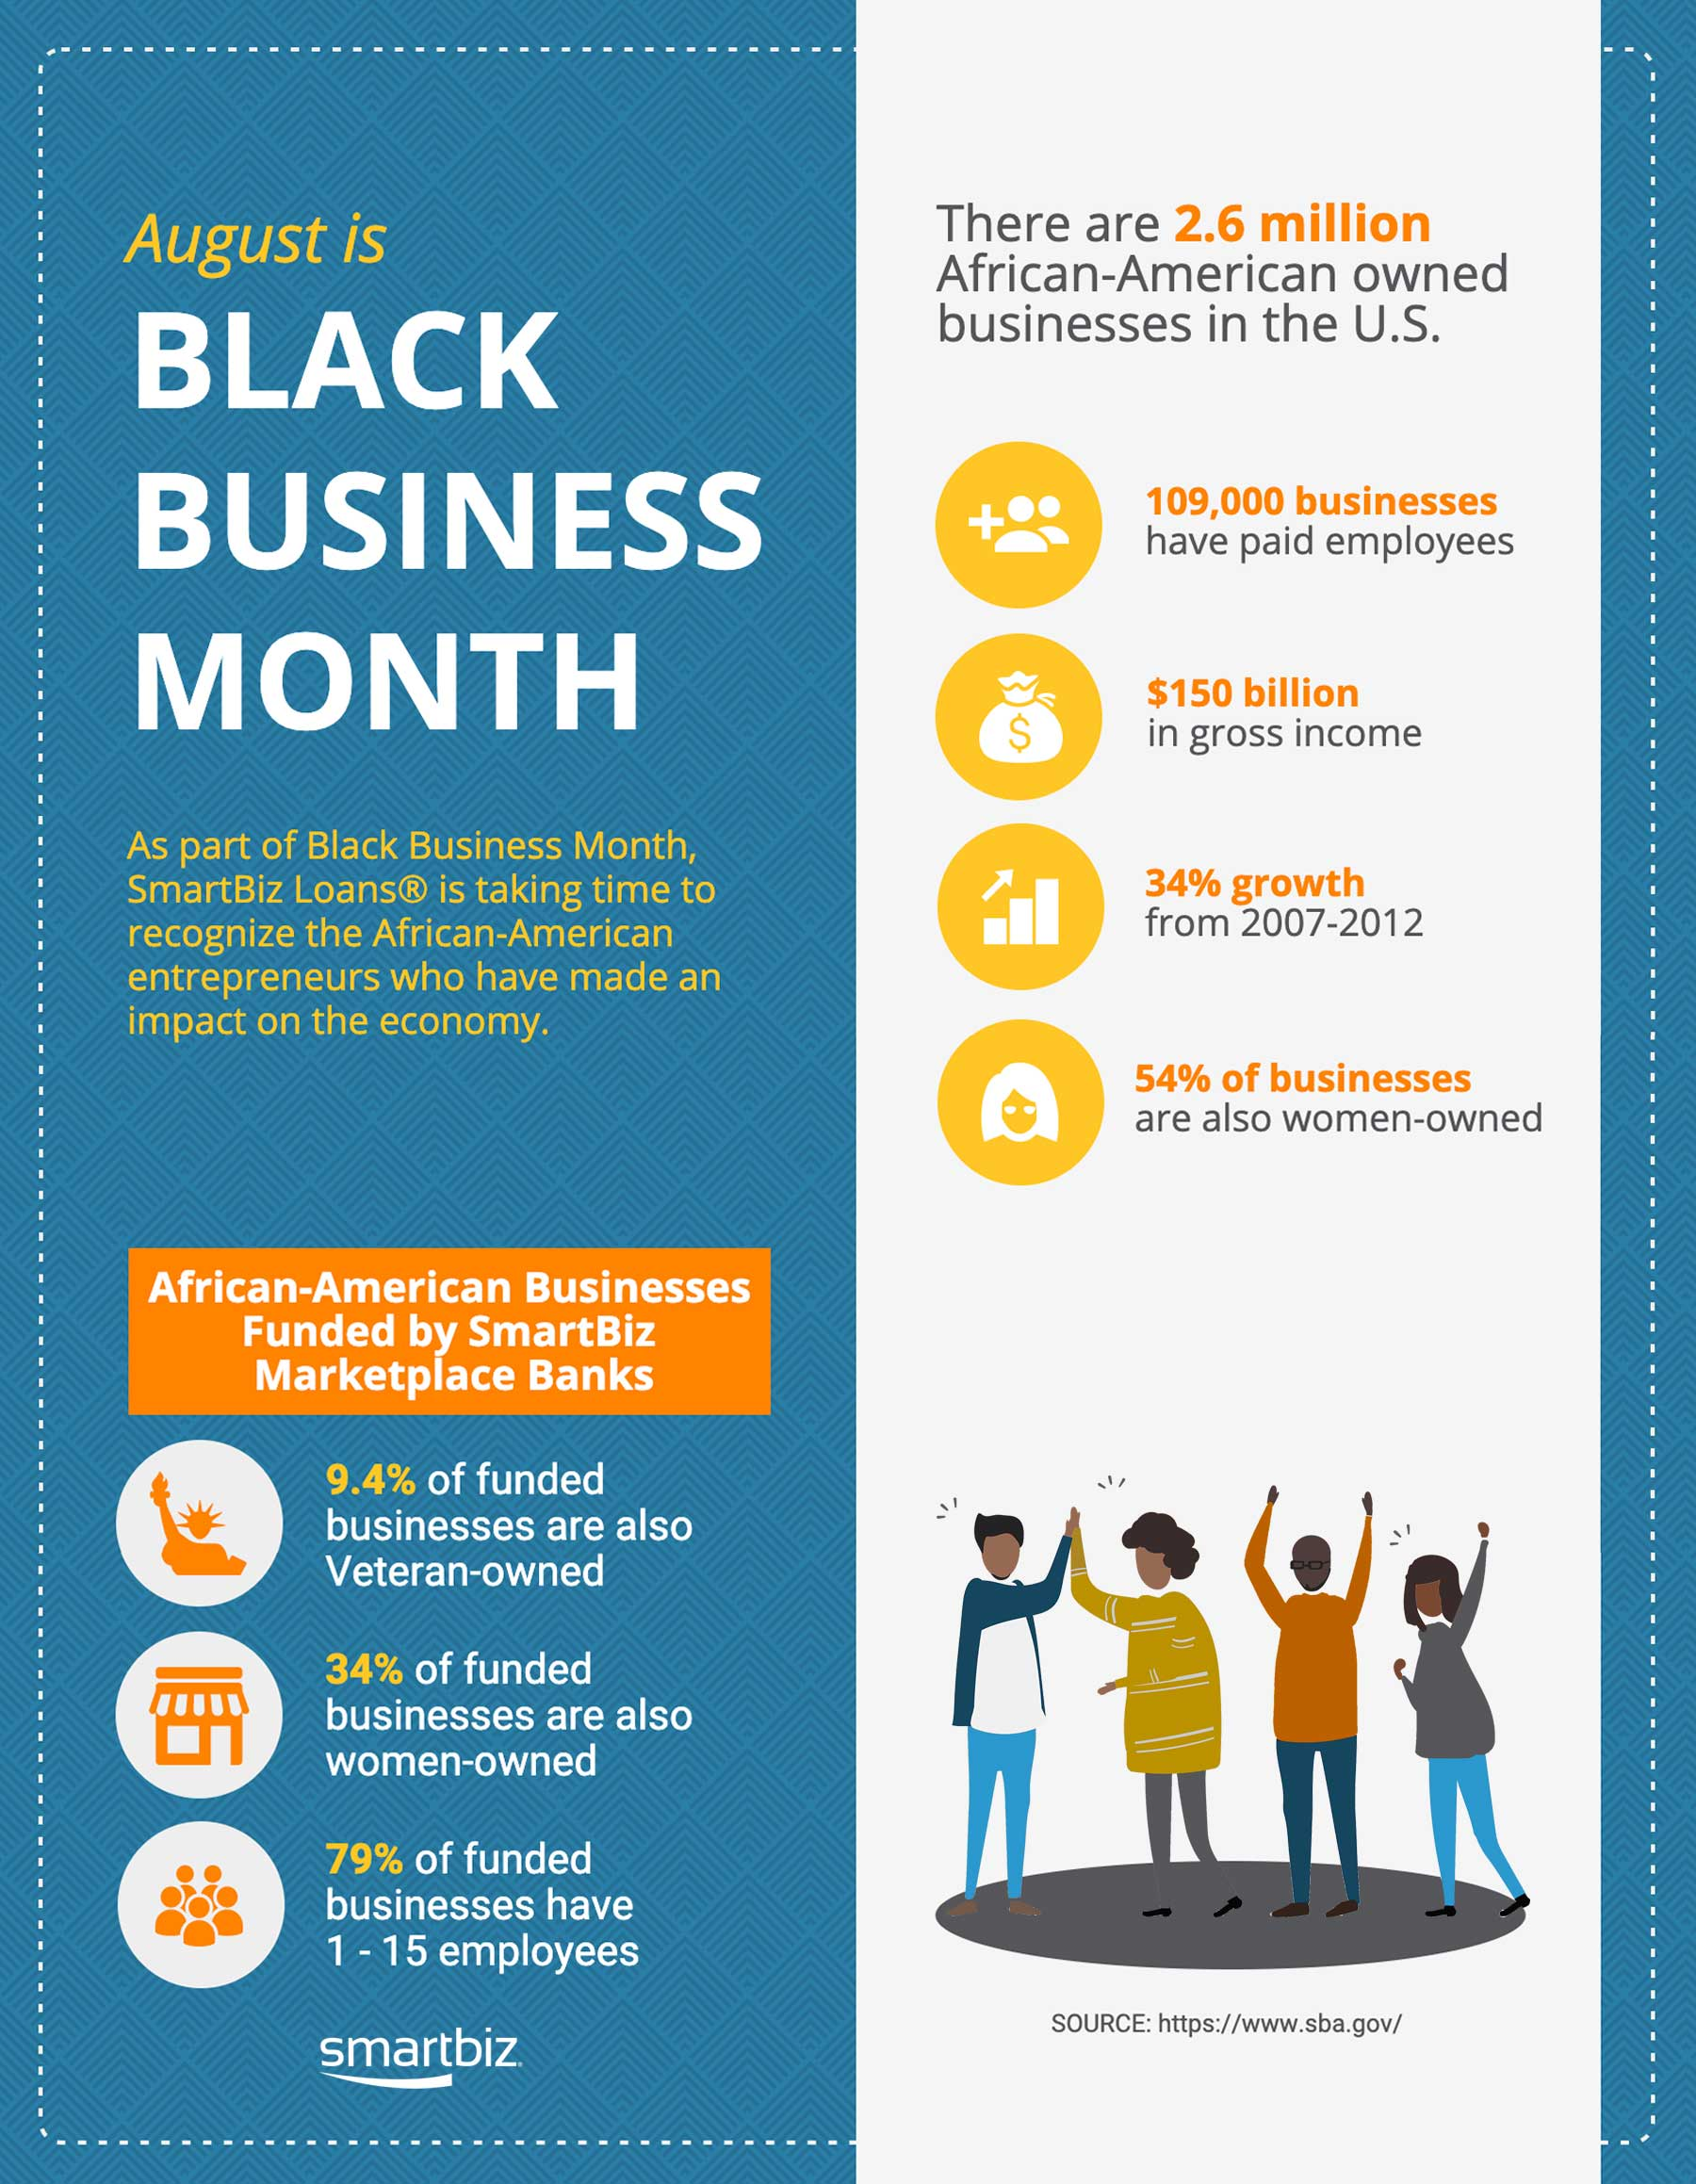 //resources.smartbizloans.com/wp-content/uploads/black-business-month-infographic.jpg